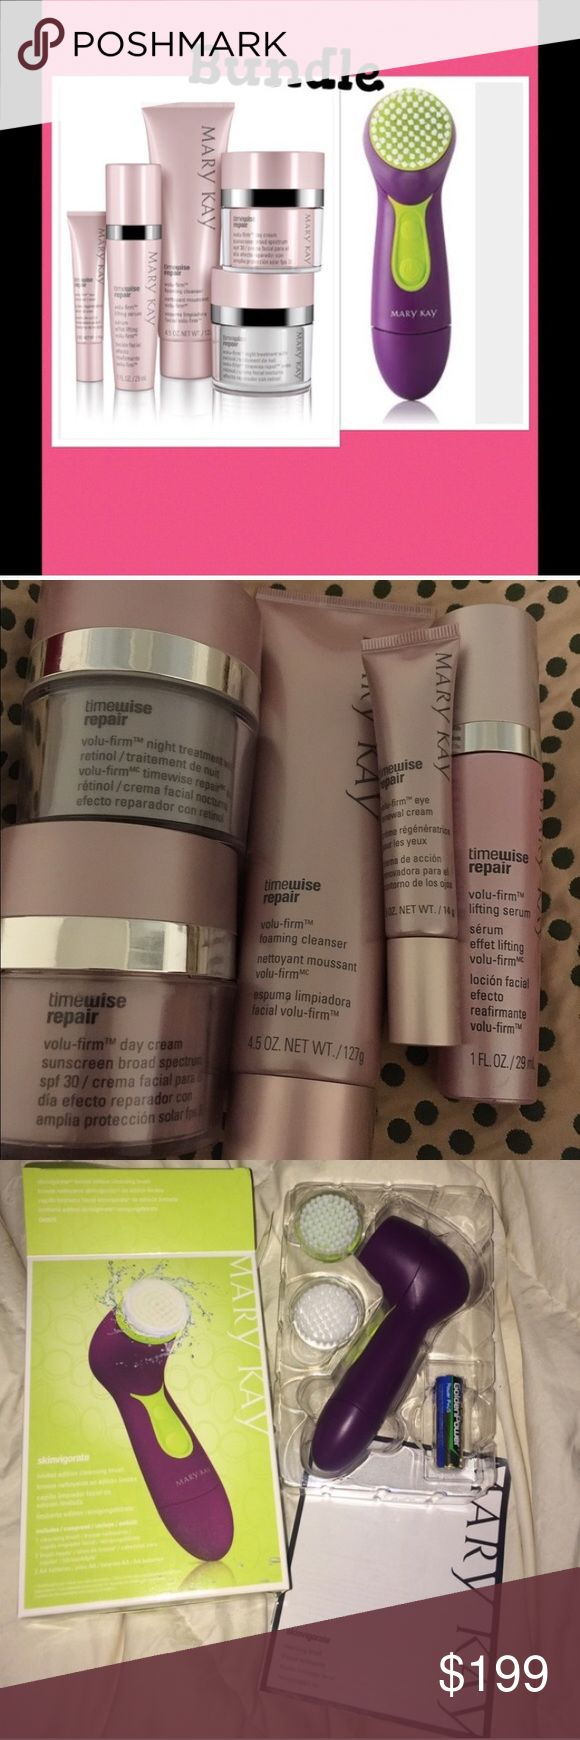 Time wise skin repair kit & face cleaning brush. New Mary Kay Other